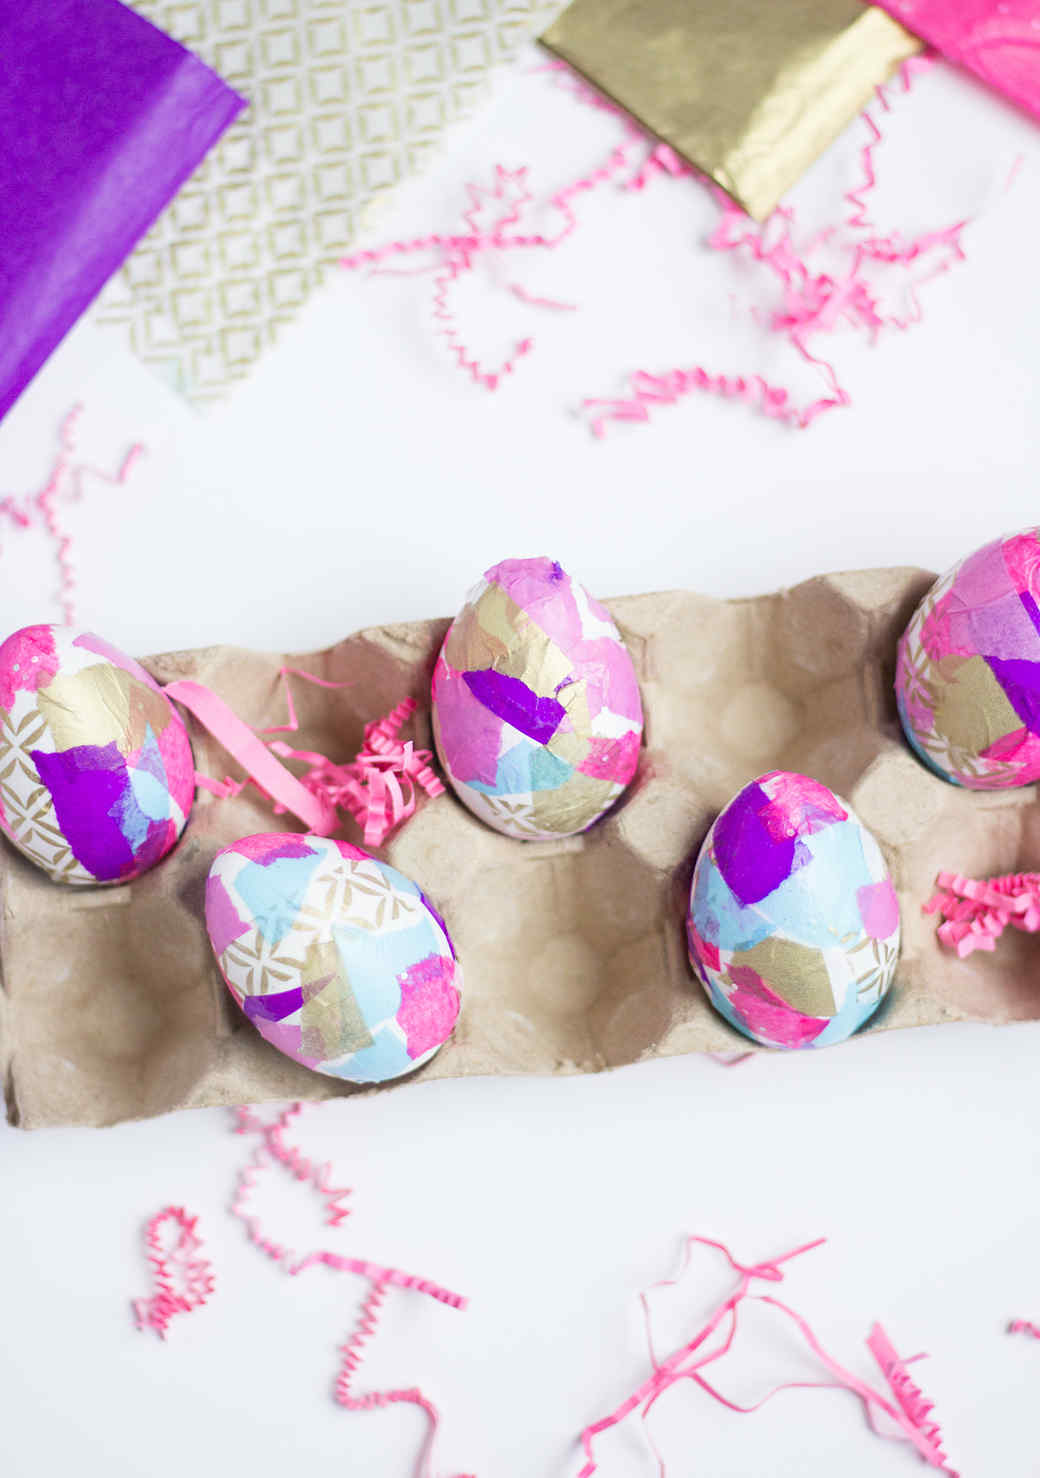 tissue-paper-easter-eggs-1215.jpg (skyword:211135)